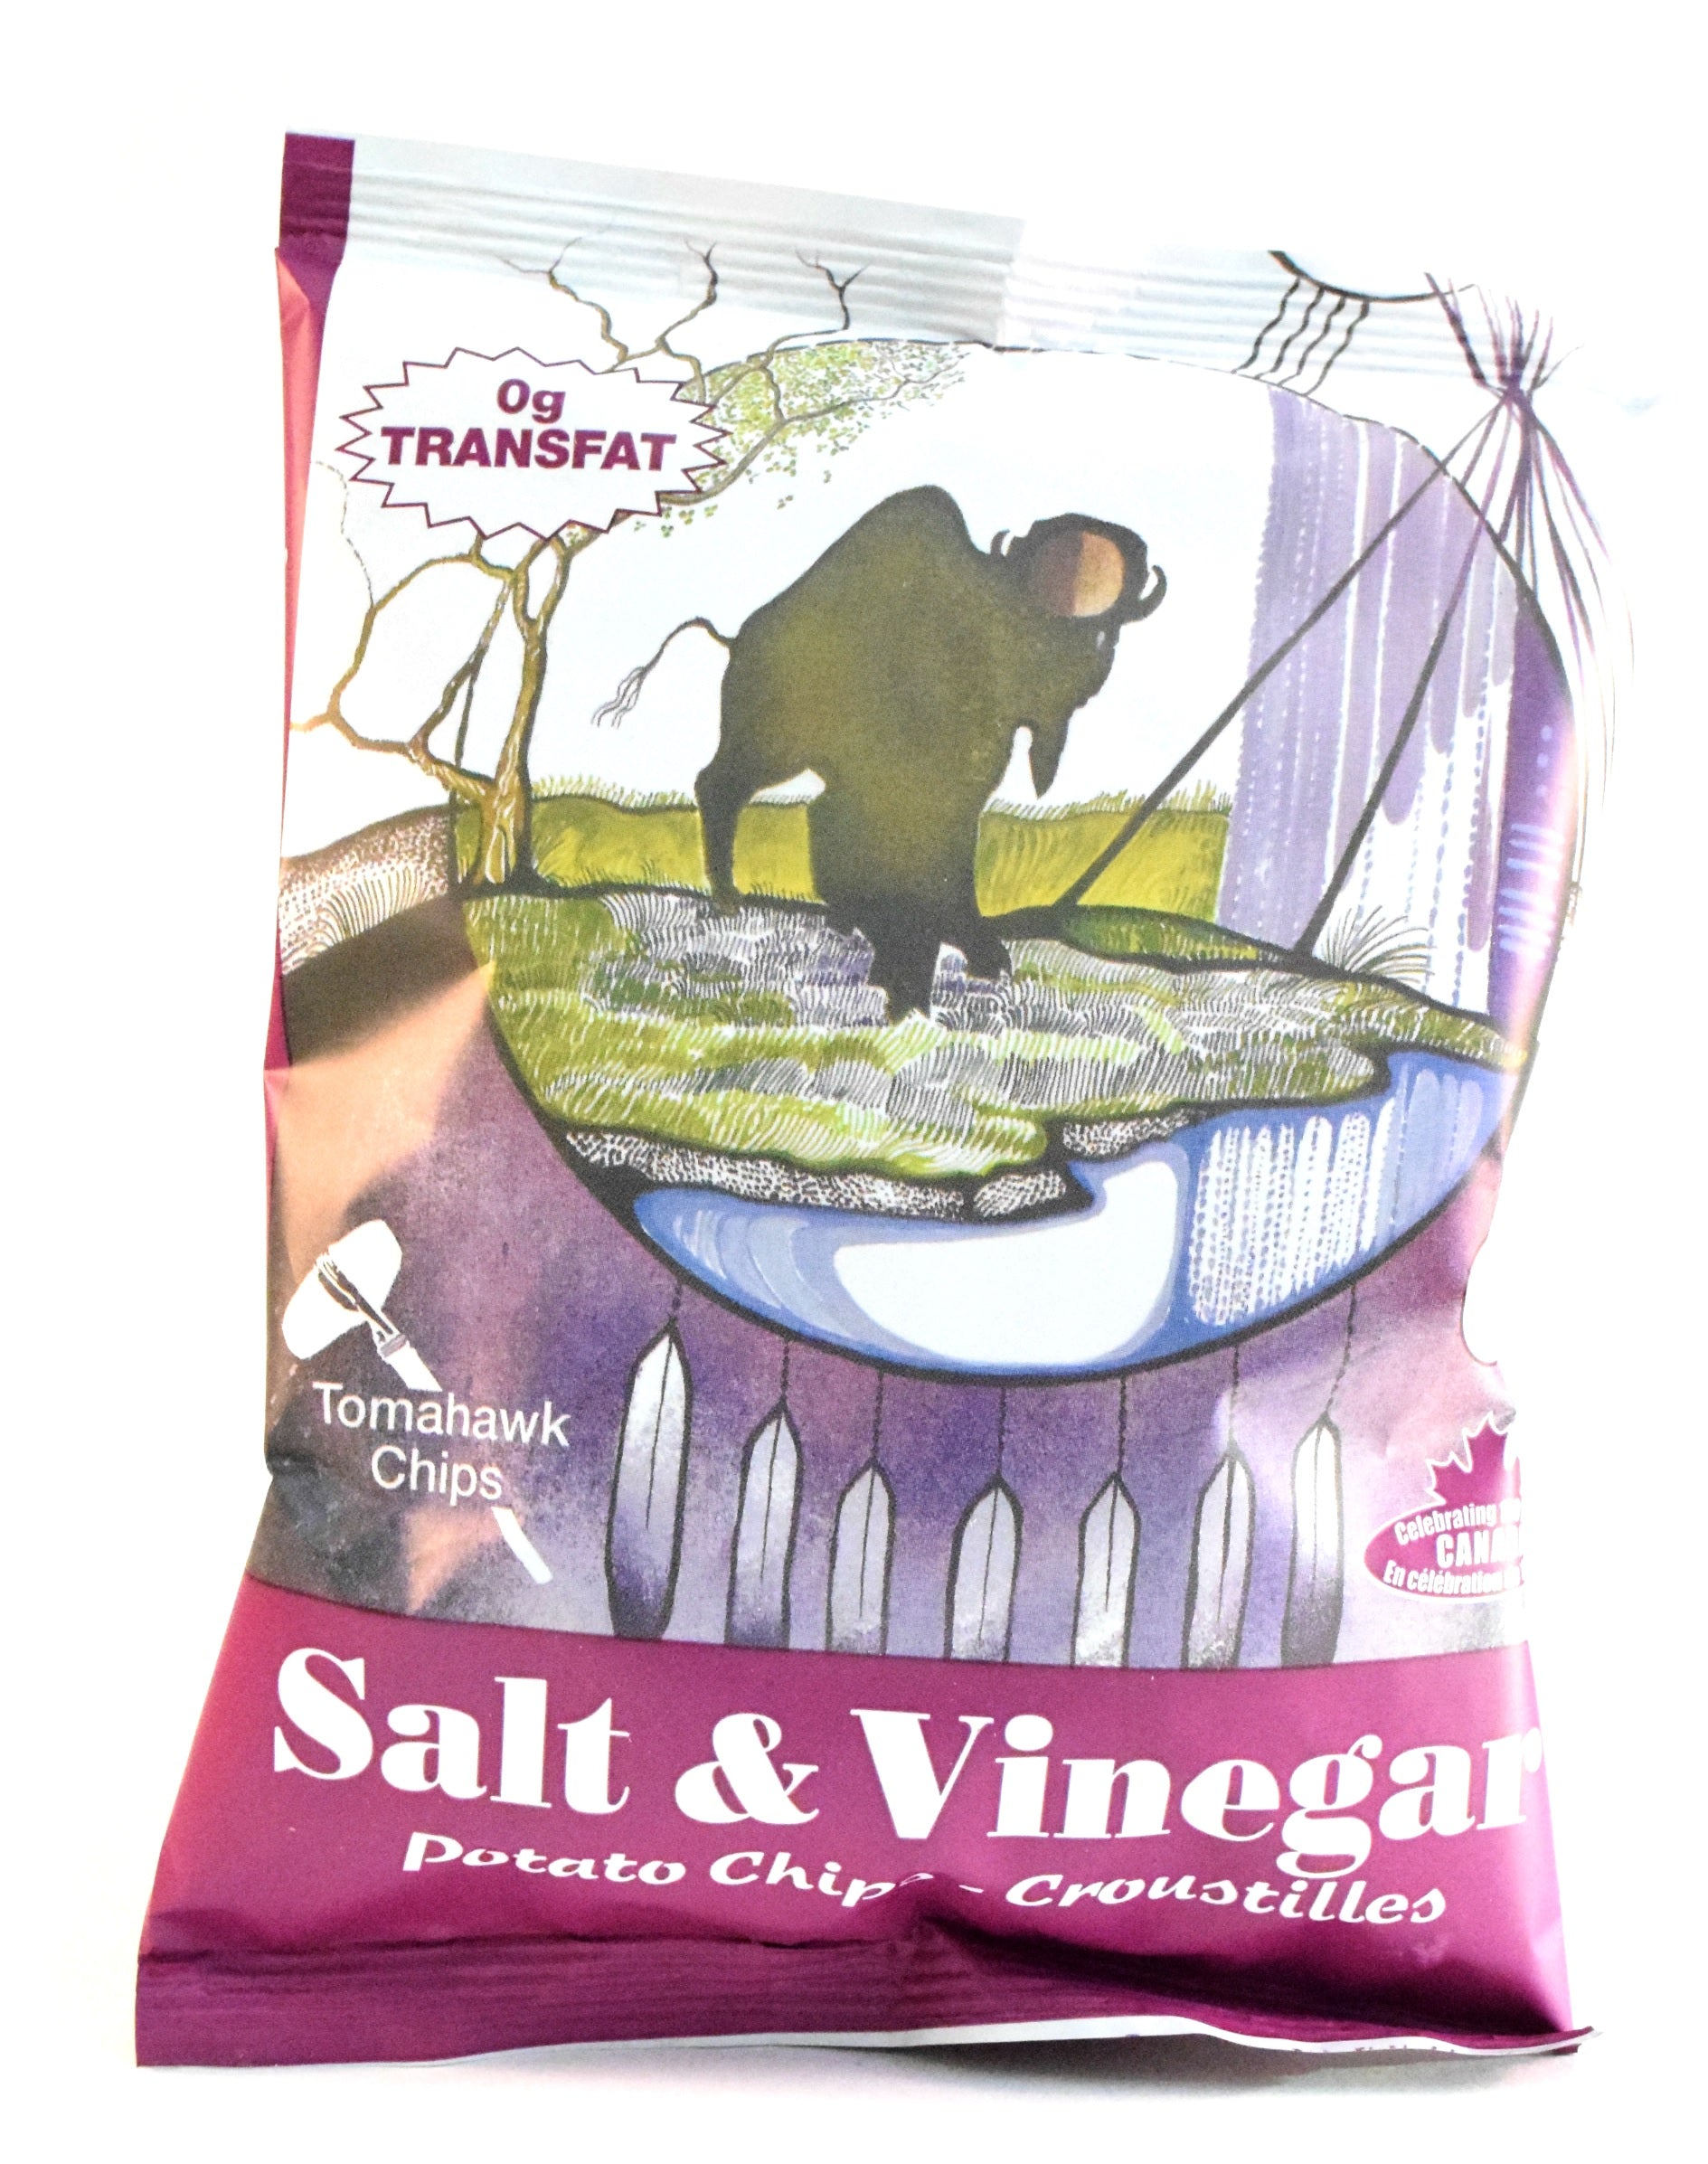 Salt & Vinegar Potato Chips 43g by Tomahawk